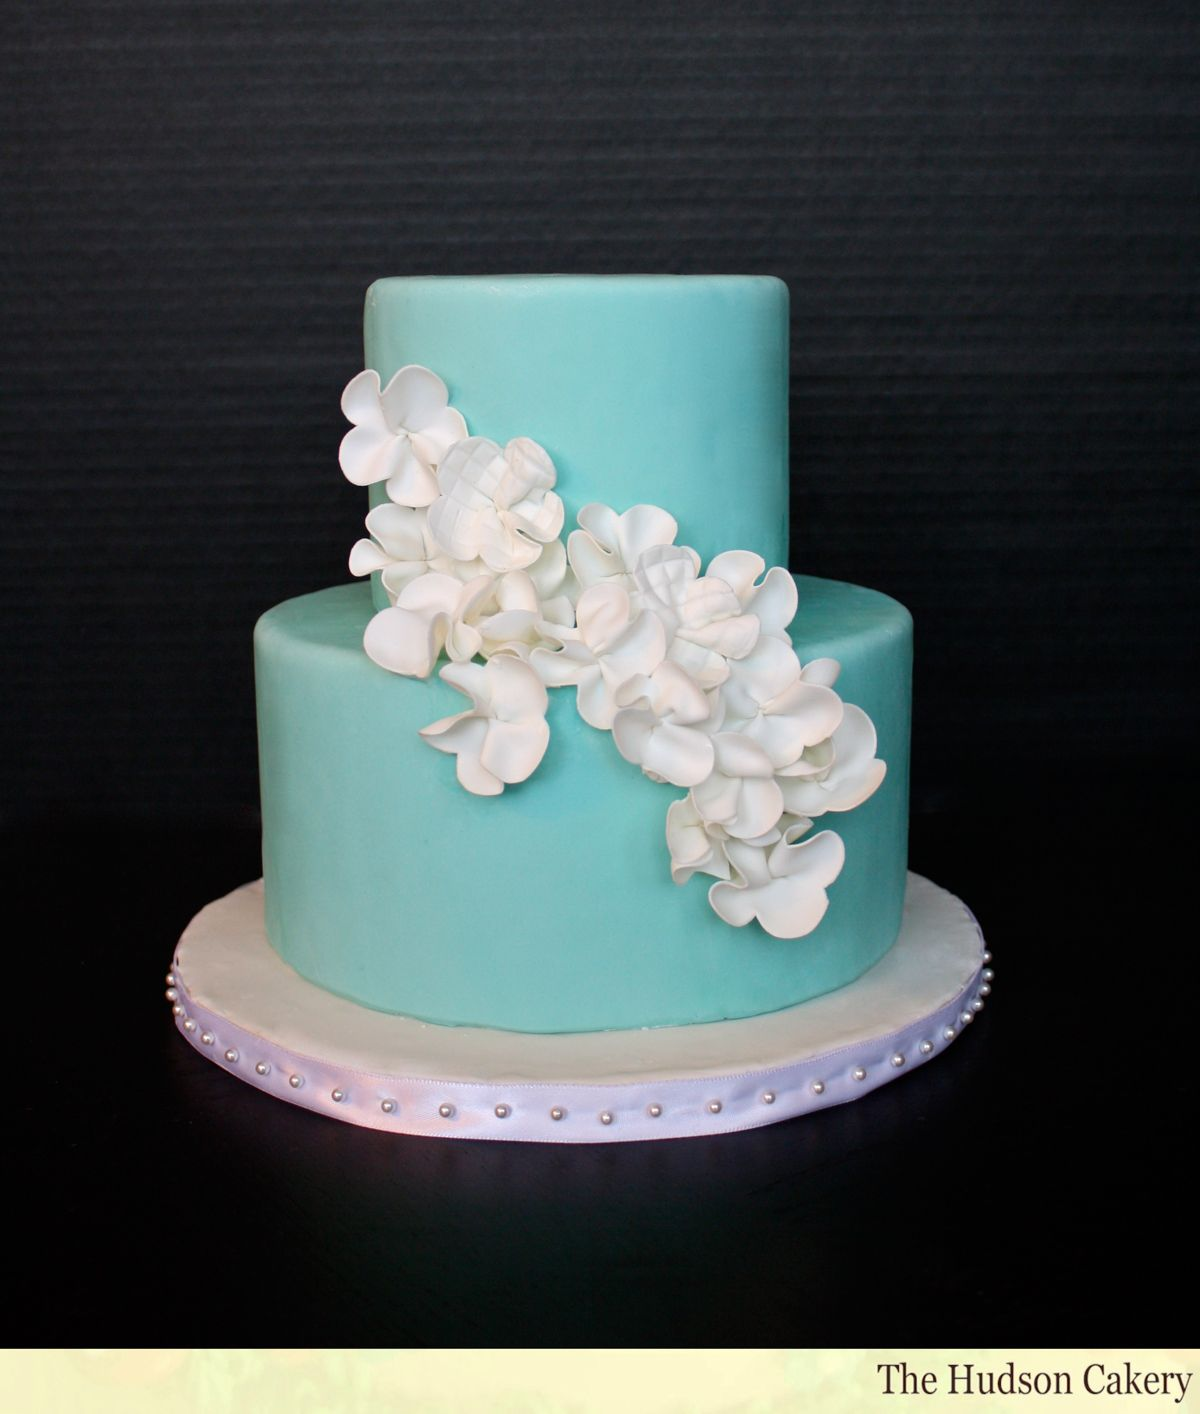 [100] [van earl cakes silver bling wedding cake] 162